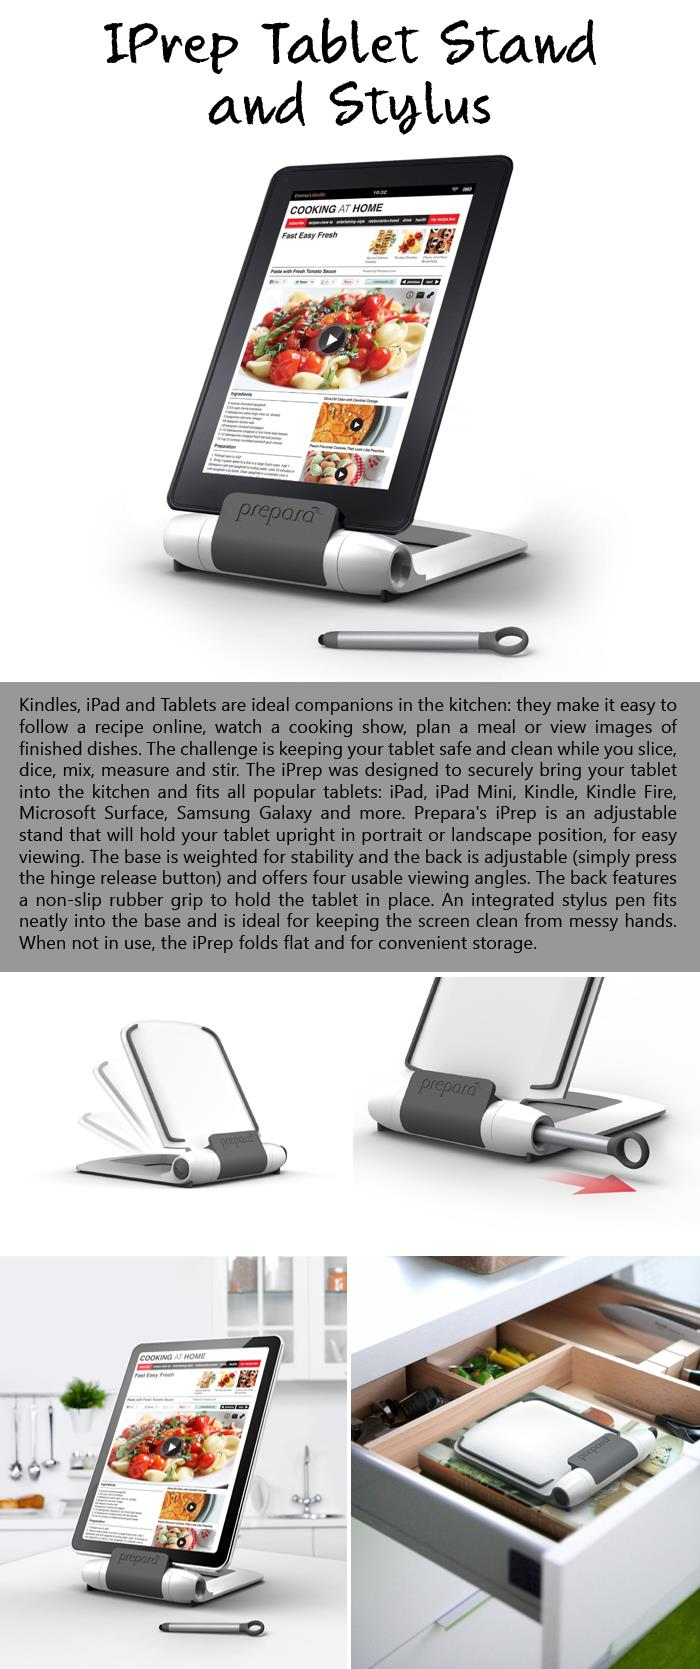 IPrep Tablet Stand and Stylus